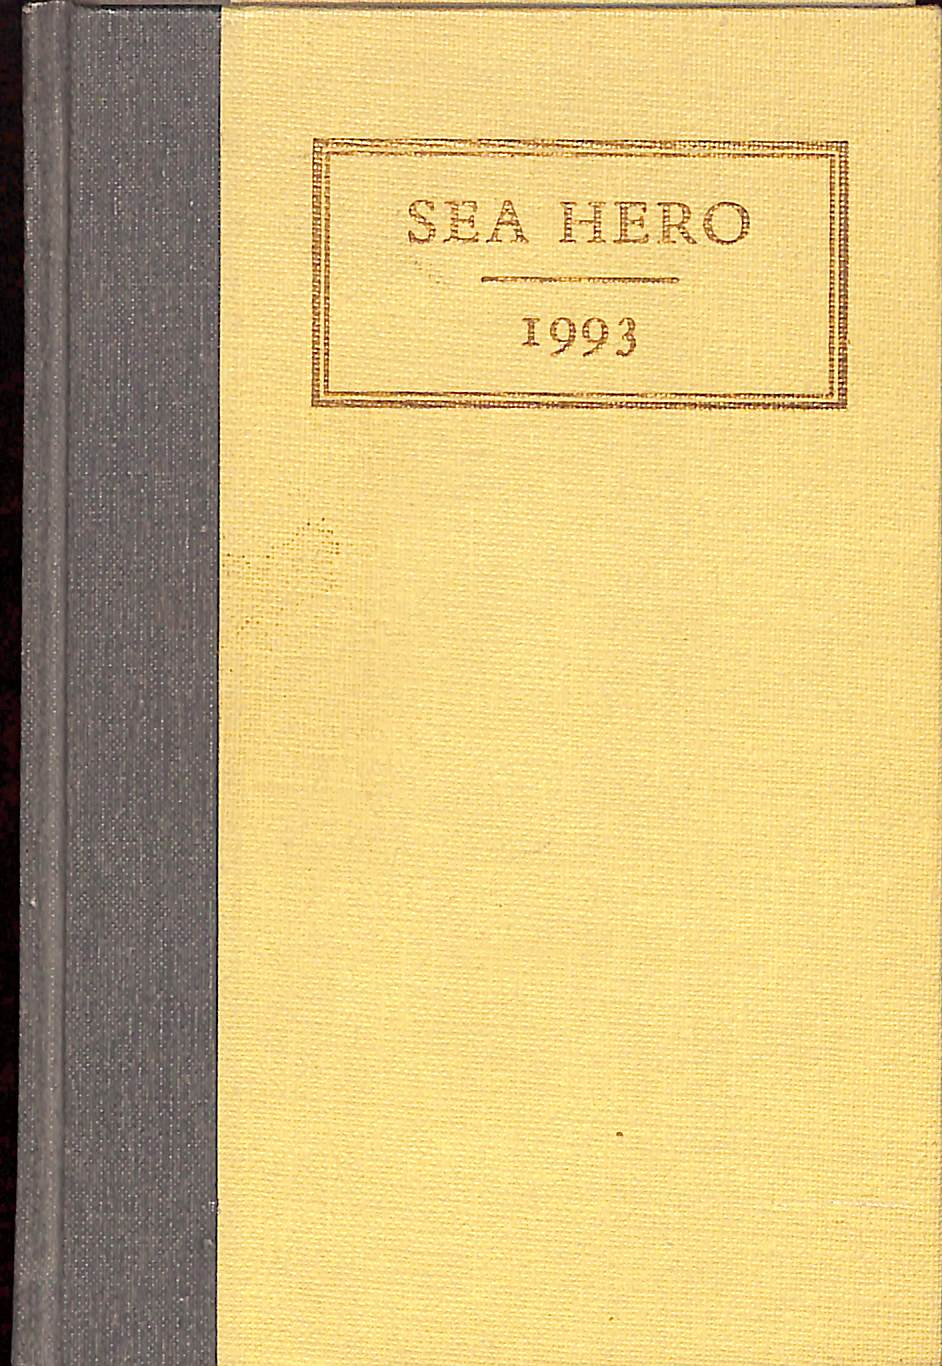 Sea Hero 1993 by Lloyd Kelly